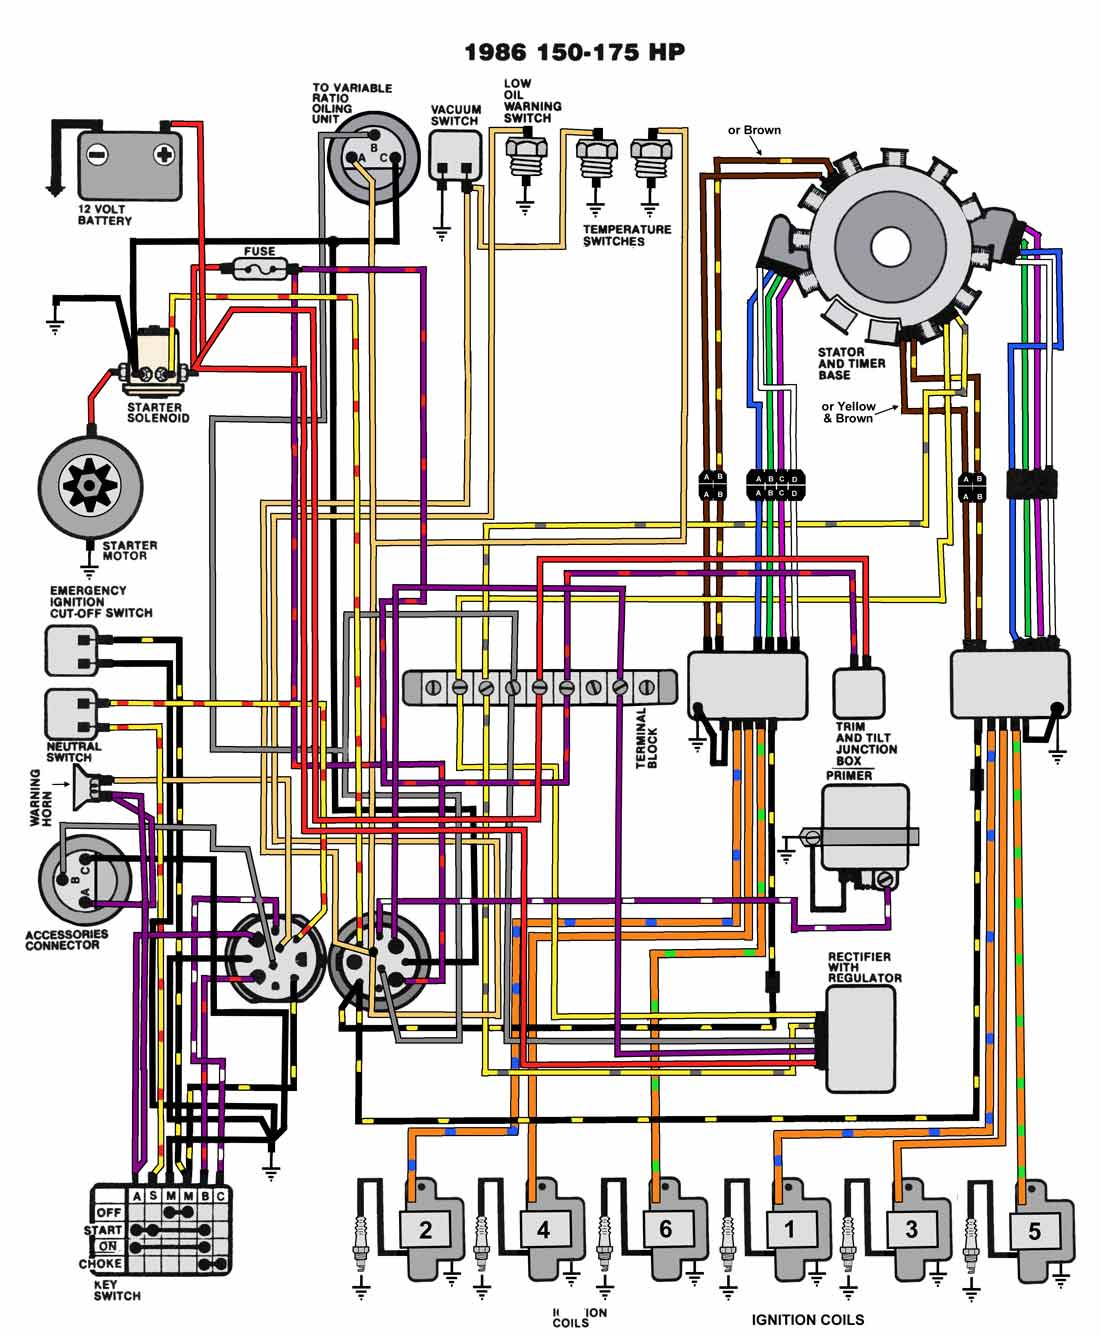 1986_150_175 maxrules wiring diagram wiring color standards \u2022 wiring diagrams mercury 25 hp wiring diagram at gsmx.co